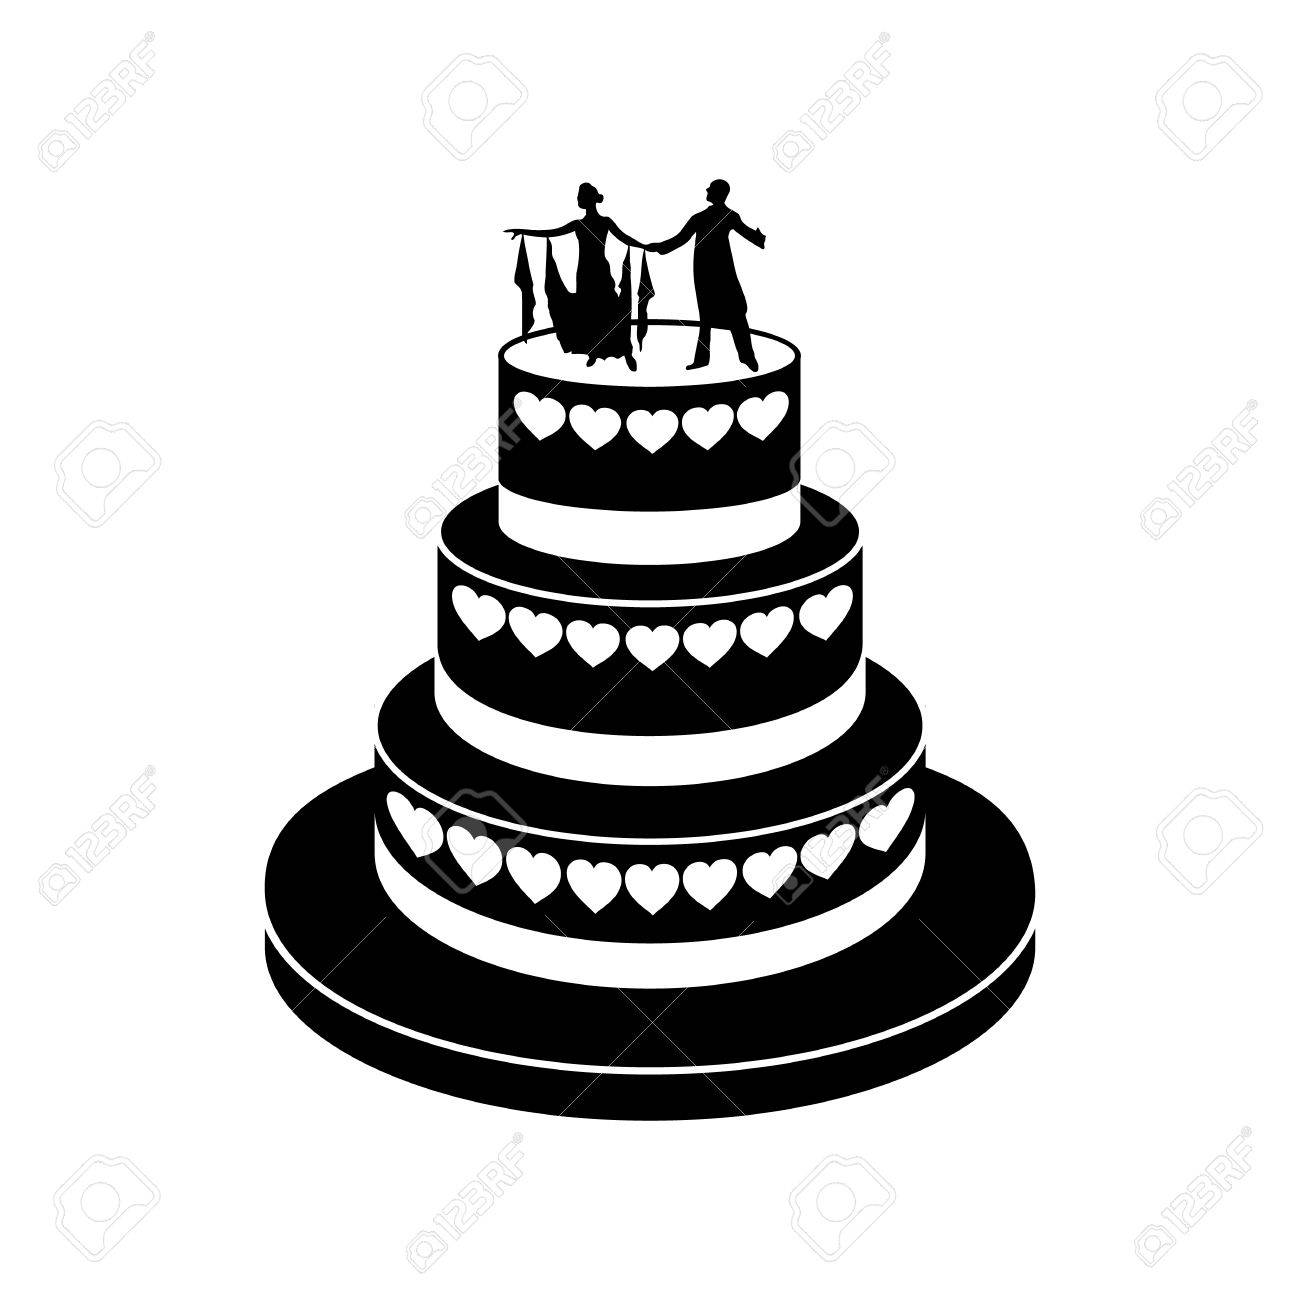 1300x1300 Wedding Cake Simple Icon Isolated On A White Background Royalty